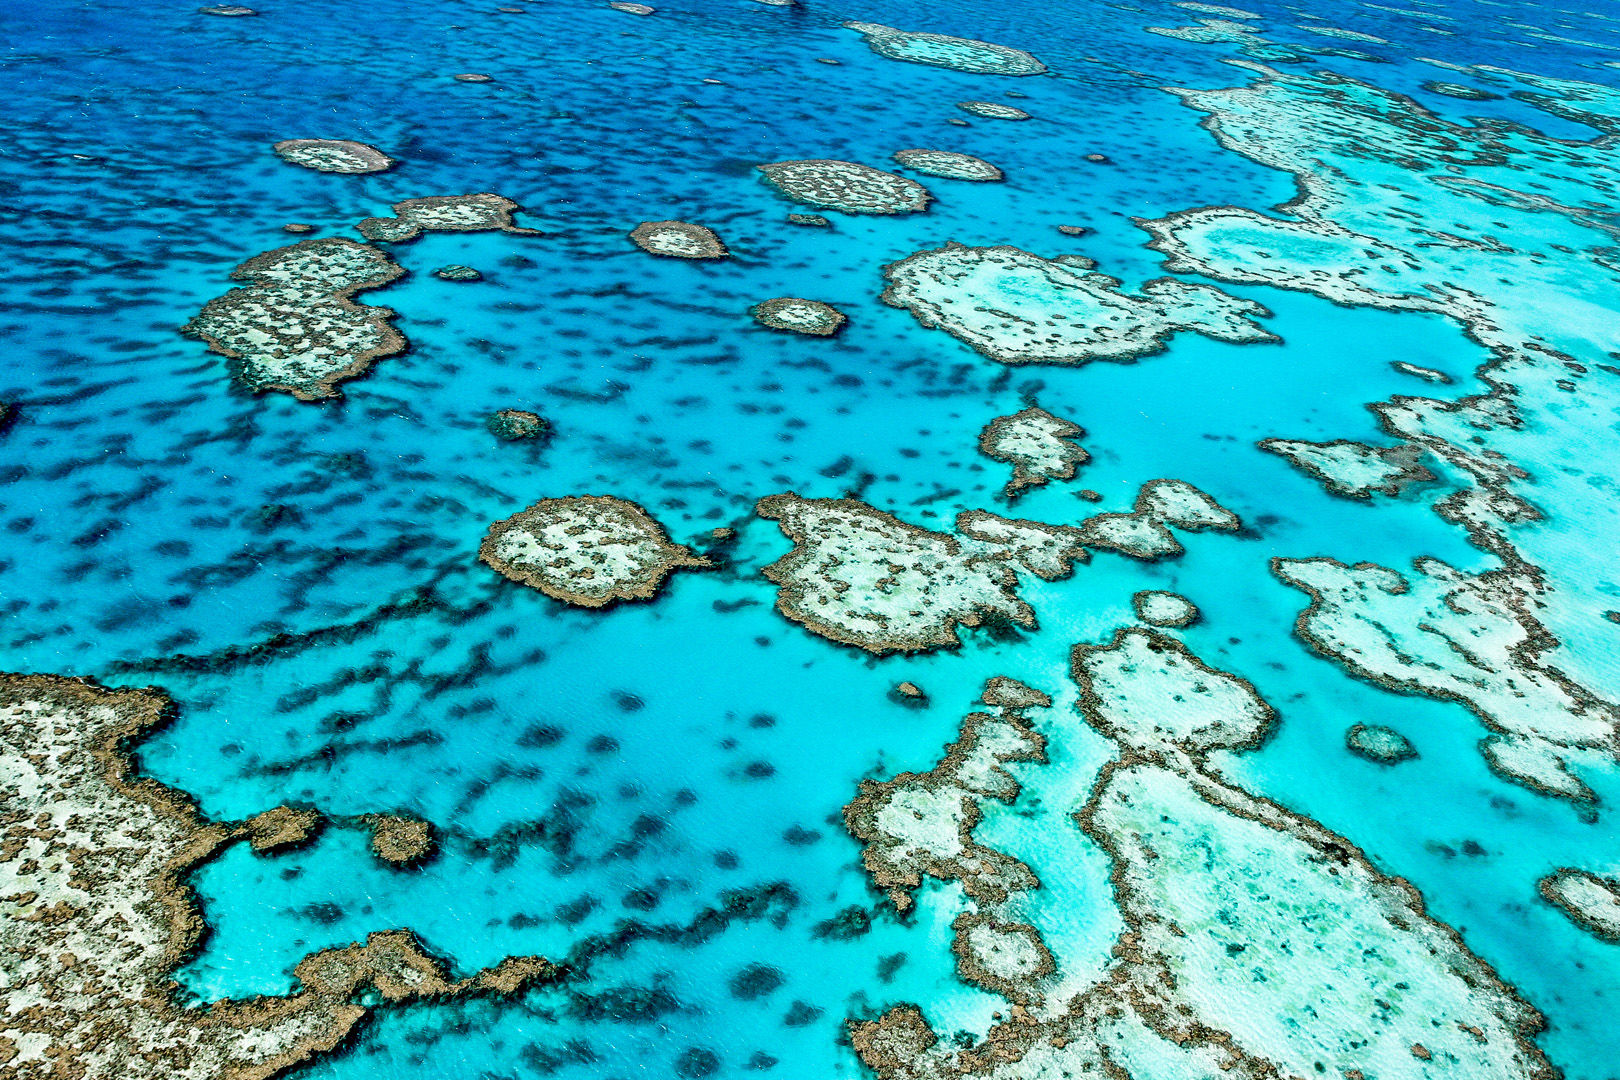 Some 1,200 miles in length and encompassing more than 13,000 square miles of ocean, the Great Barrier Reef Marine Park harbors an astounding variety of marine life, including more than 1,600 species of fish